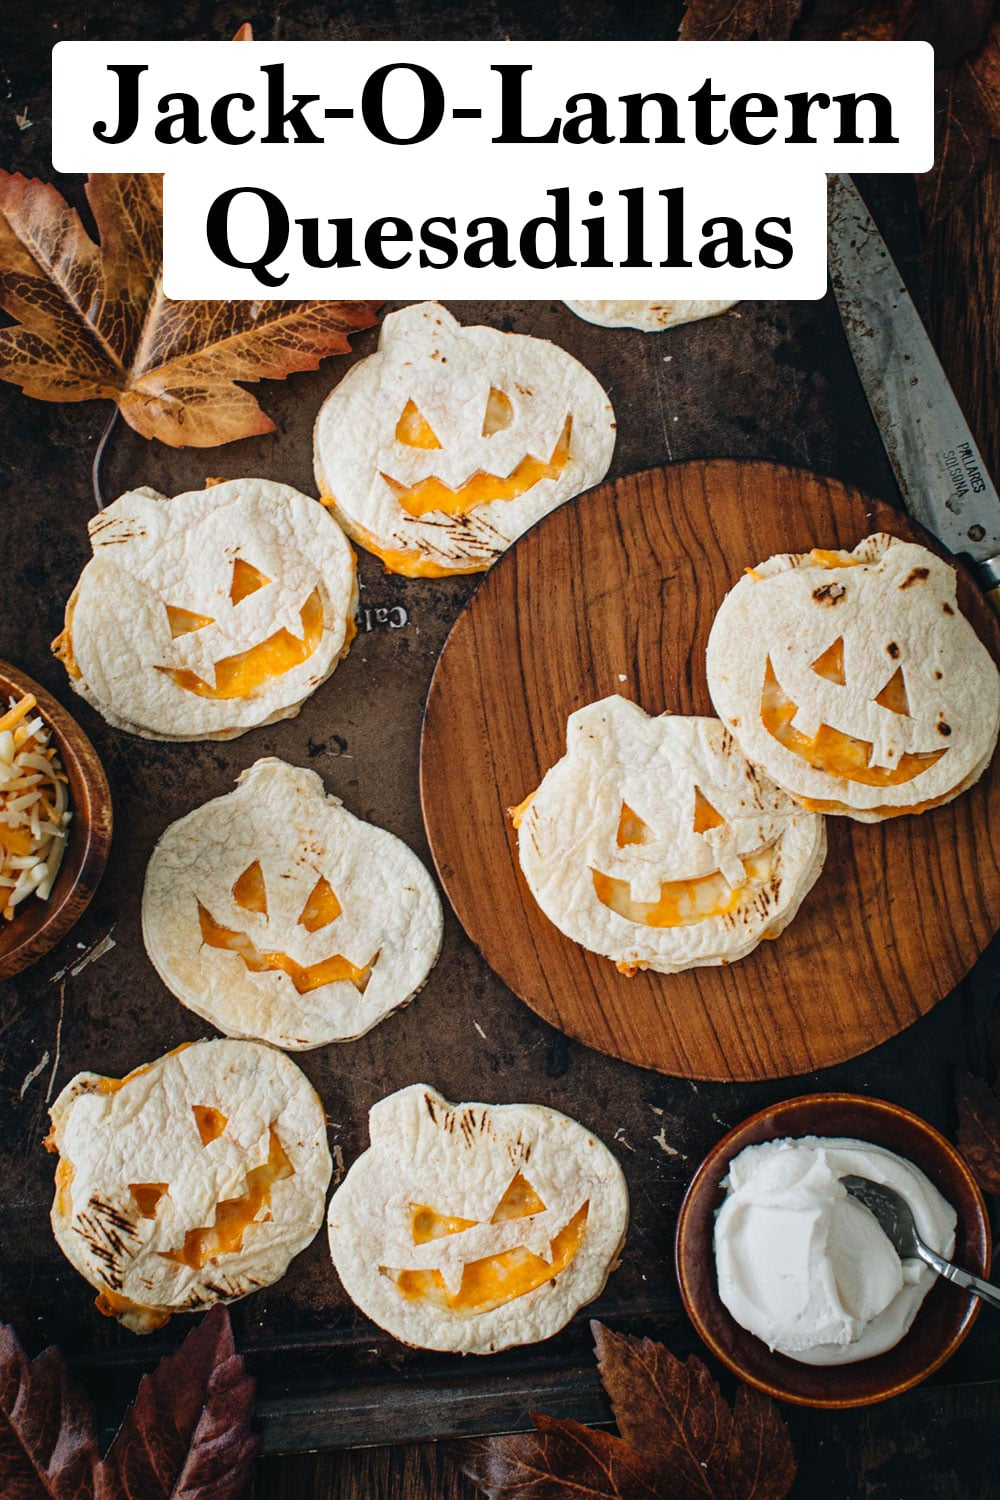 Jack-o-lantern quesadillas on a baking sheet and wooden plate.